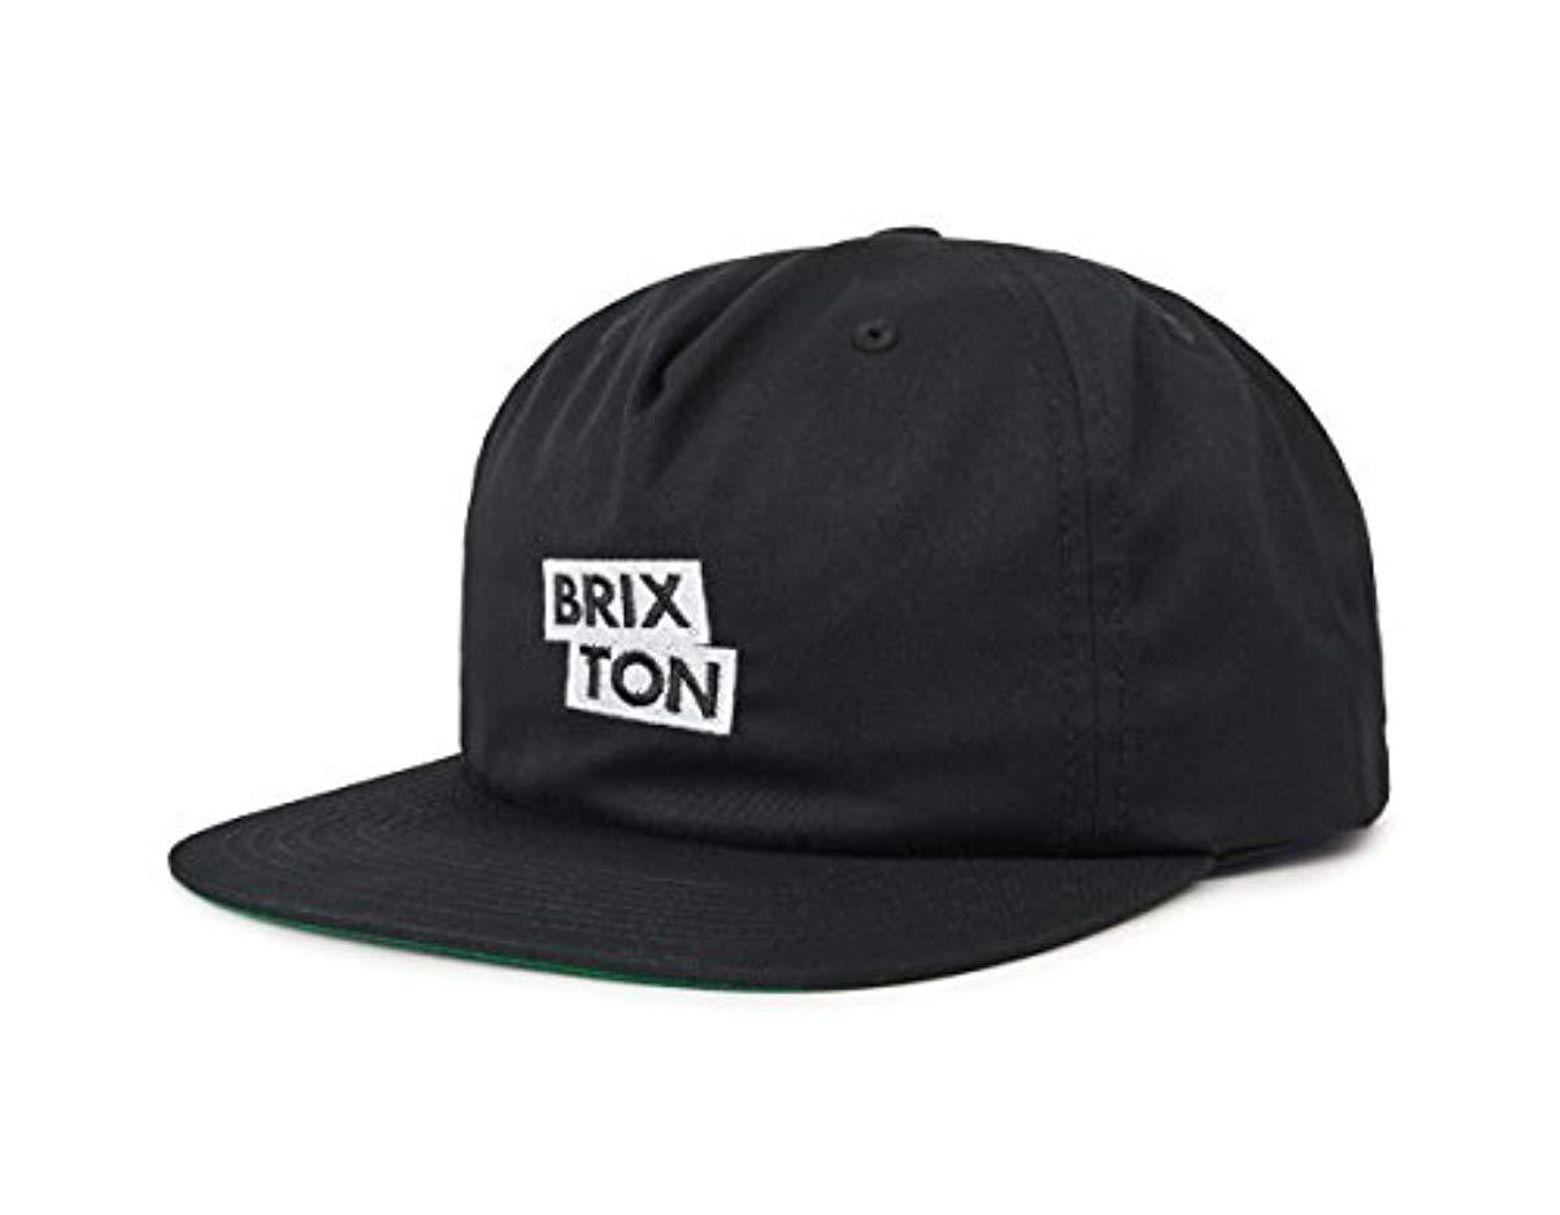 6984d3a2 Brixton Team Mp Snbk in Black for Men - Save 76% - Lyst